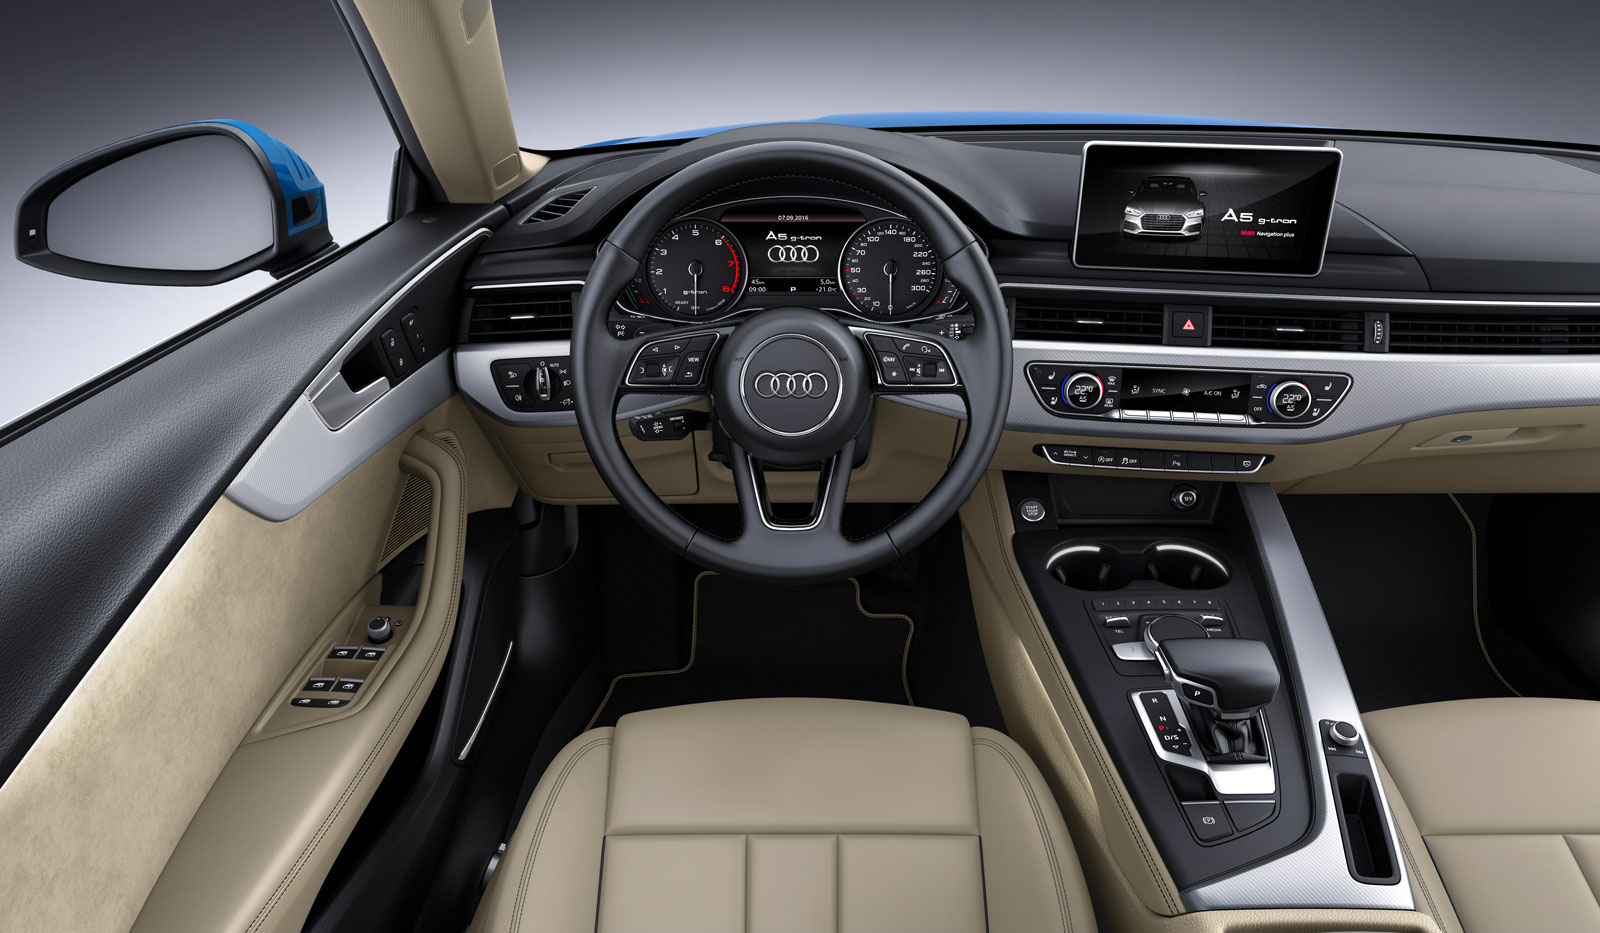 Audi A5 Sportback G Tron Interior Car Body Design